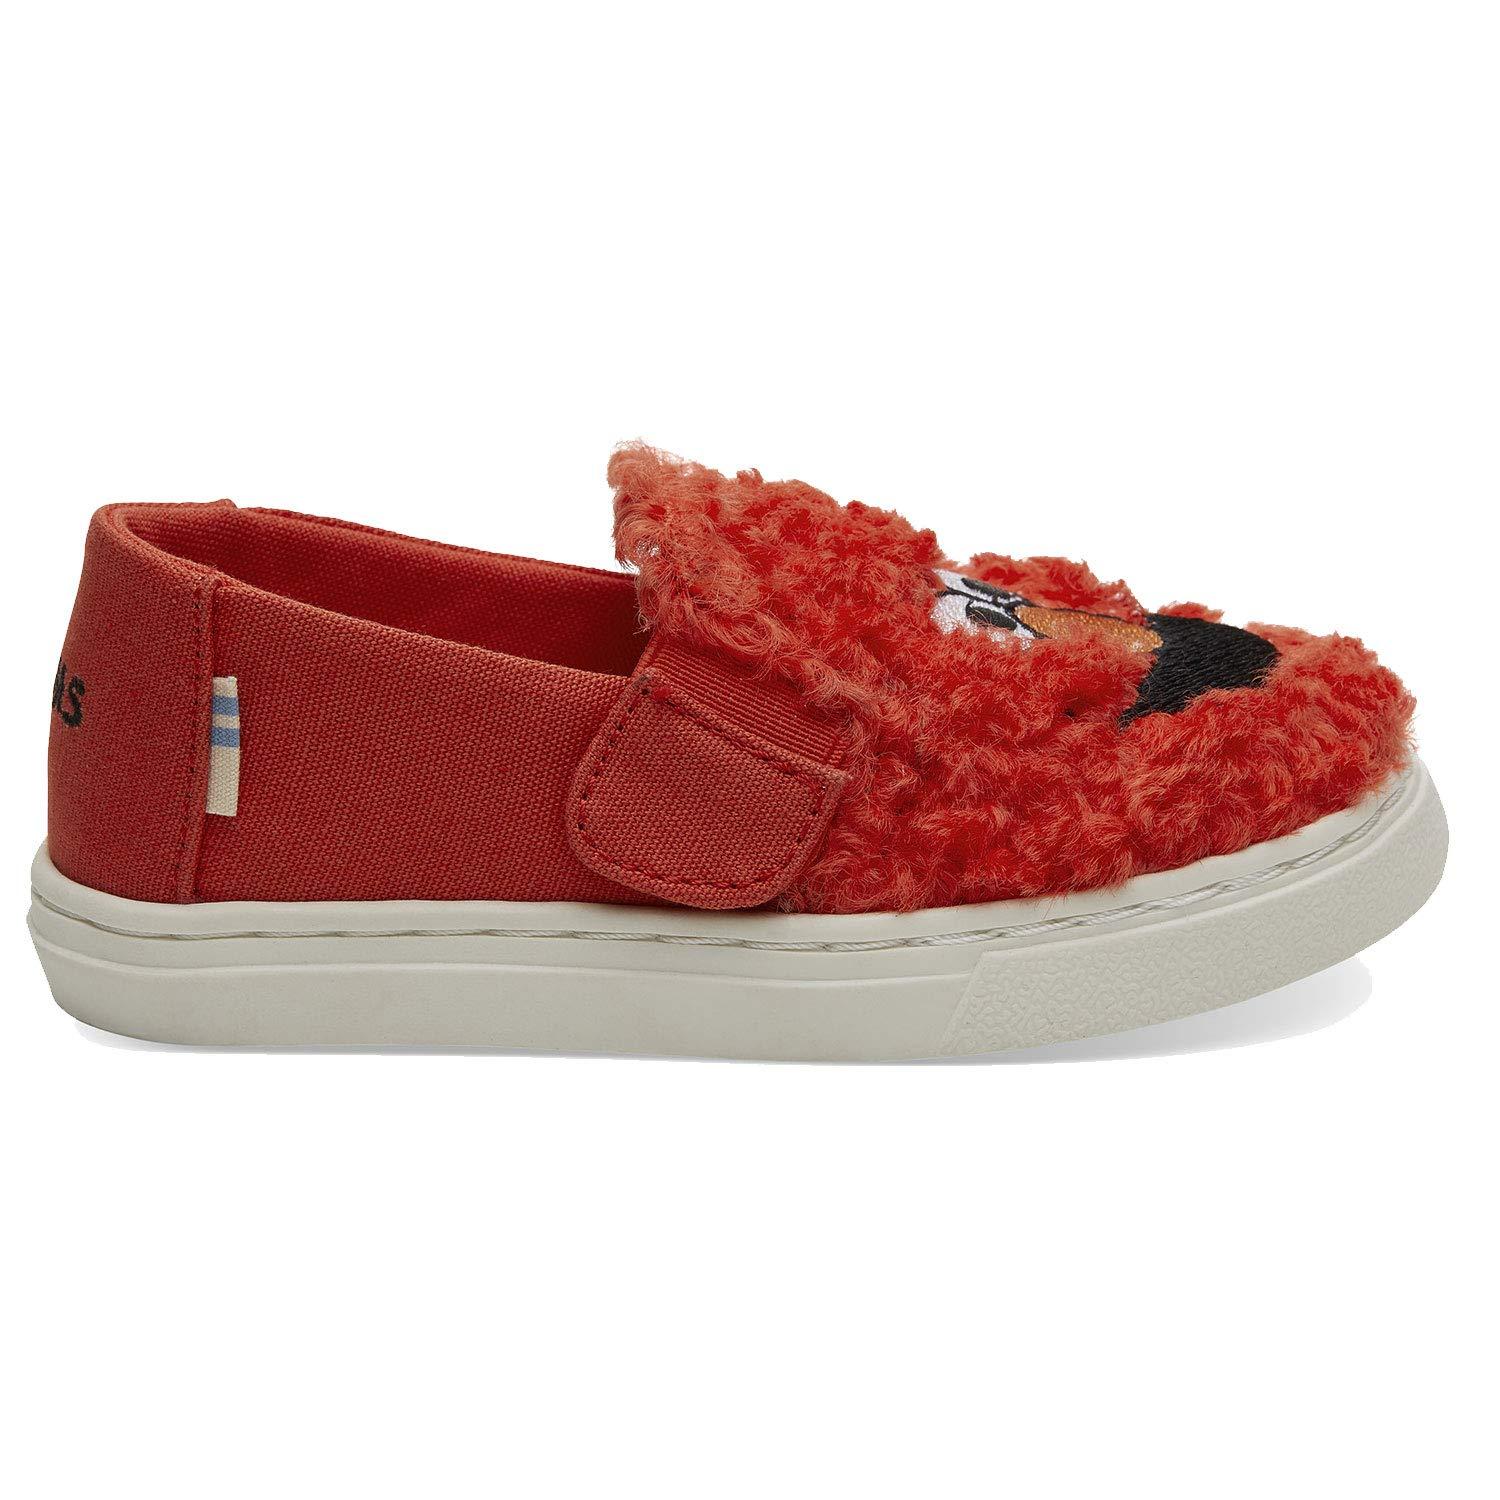 TOMS Sesame Street X Elmo Face Faux Shearling Tiny Luca Slip-Ons 10013649 (Size: 9) Red